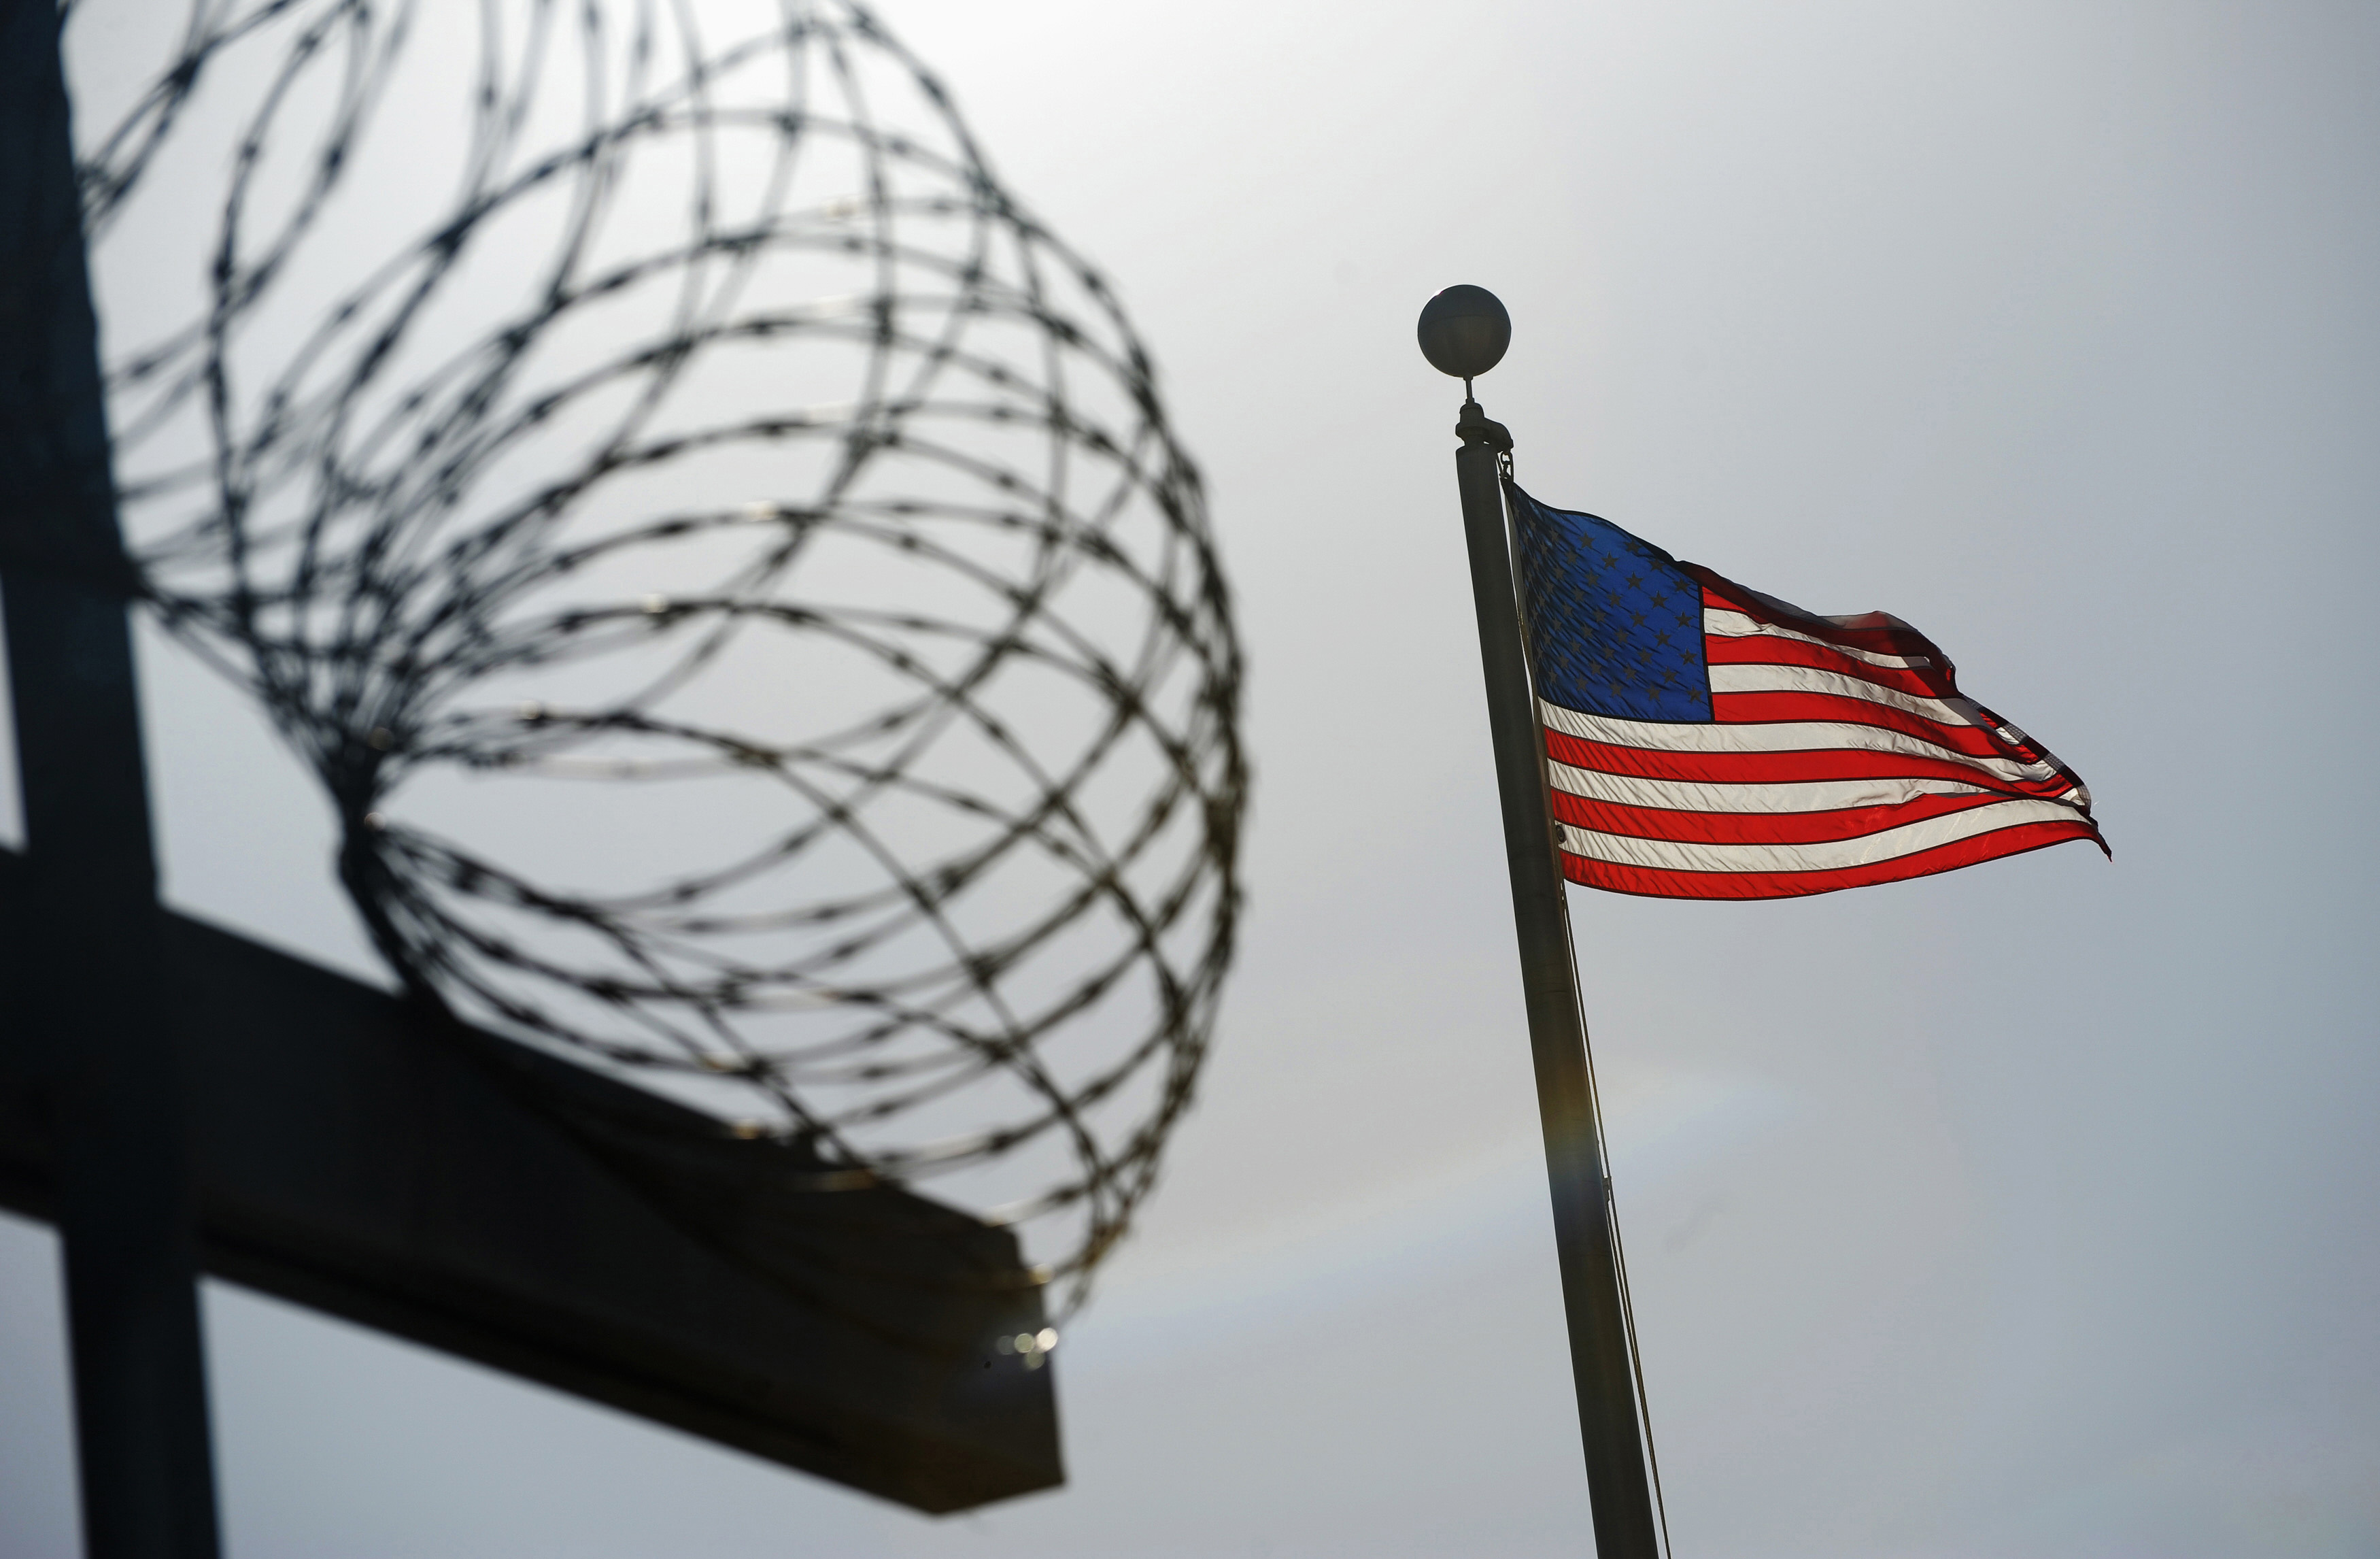 A U.S. flag flies above a razorwire-topped fence at the U.S. Naval Station Guantanamo Bay on December 10, 2008. REUTERS/Mandel Ngan/Pool (CUBA)